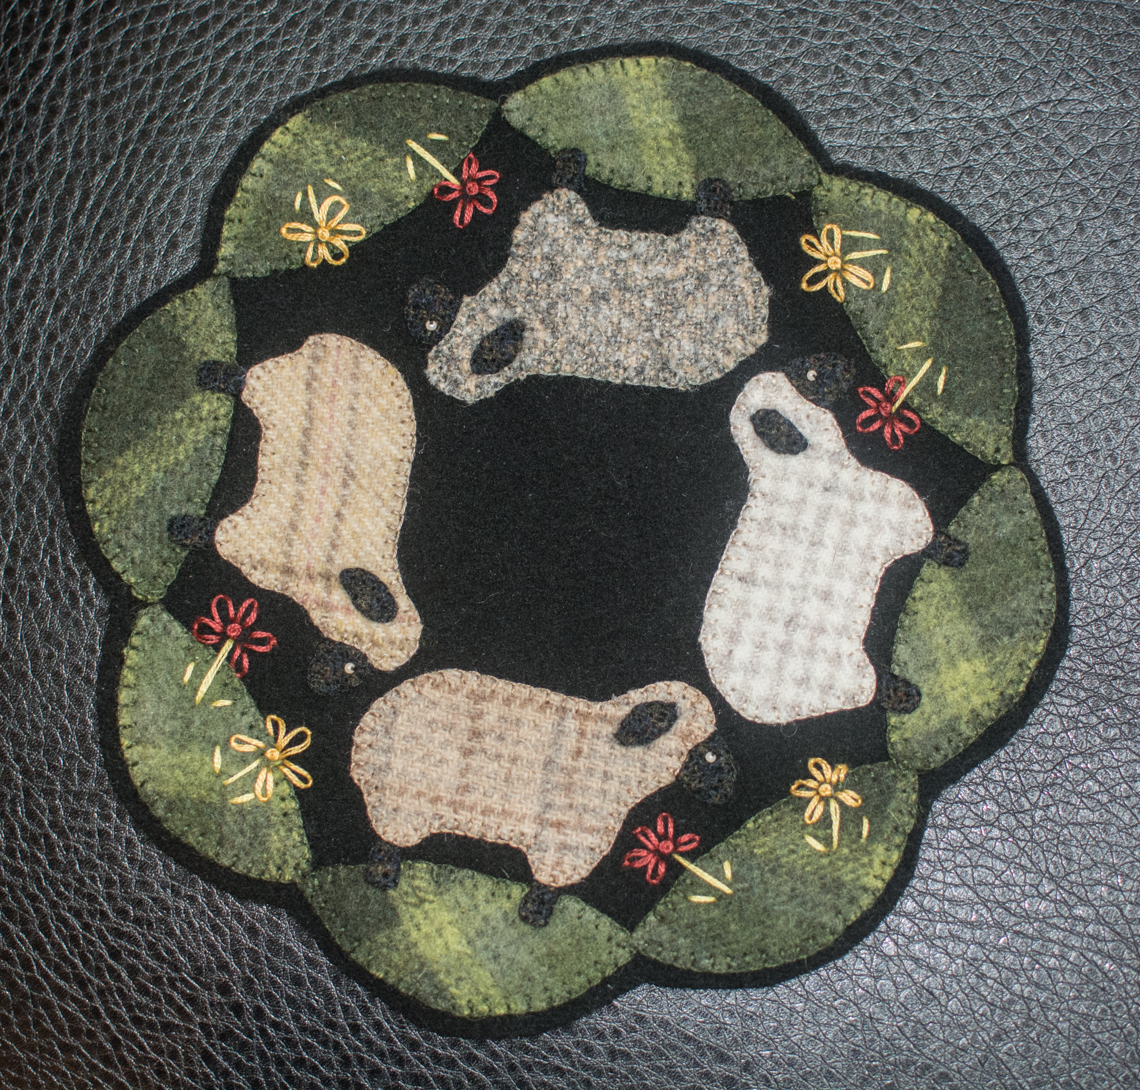 Sheep mat